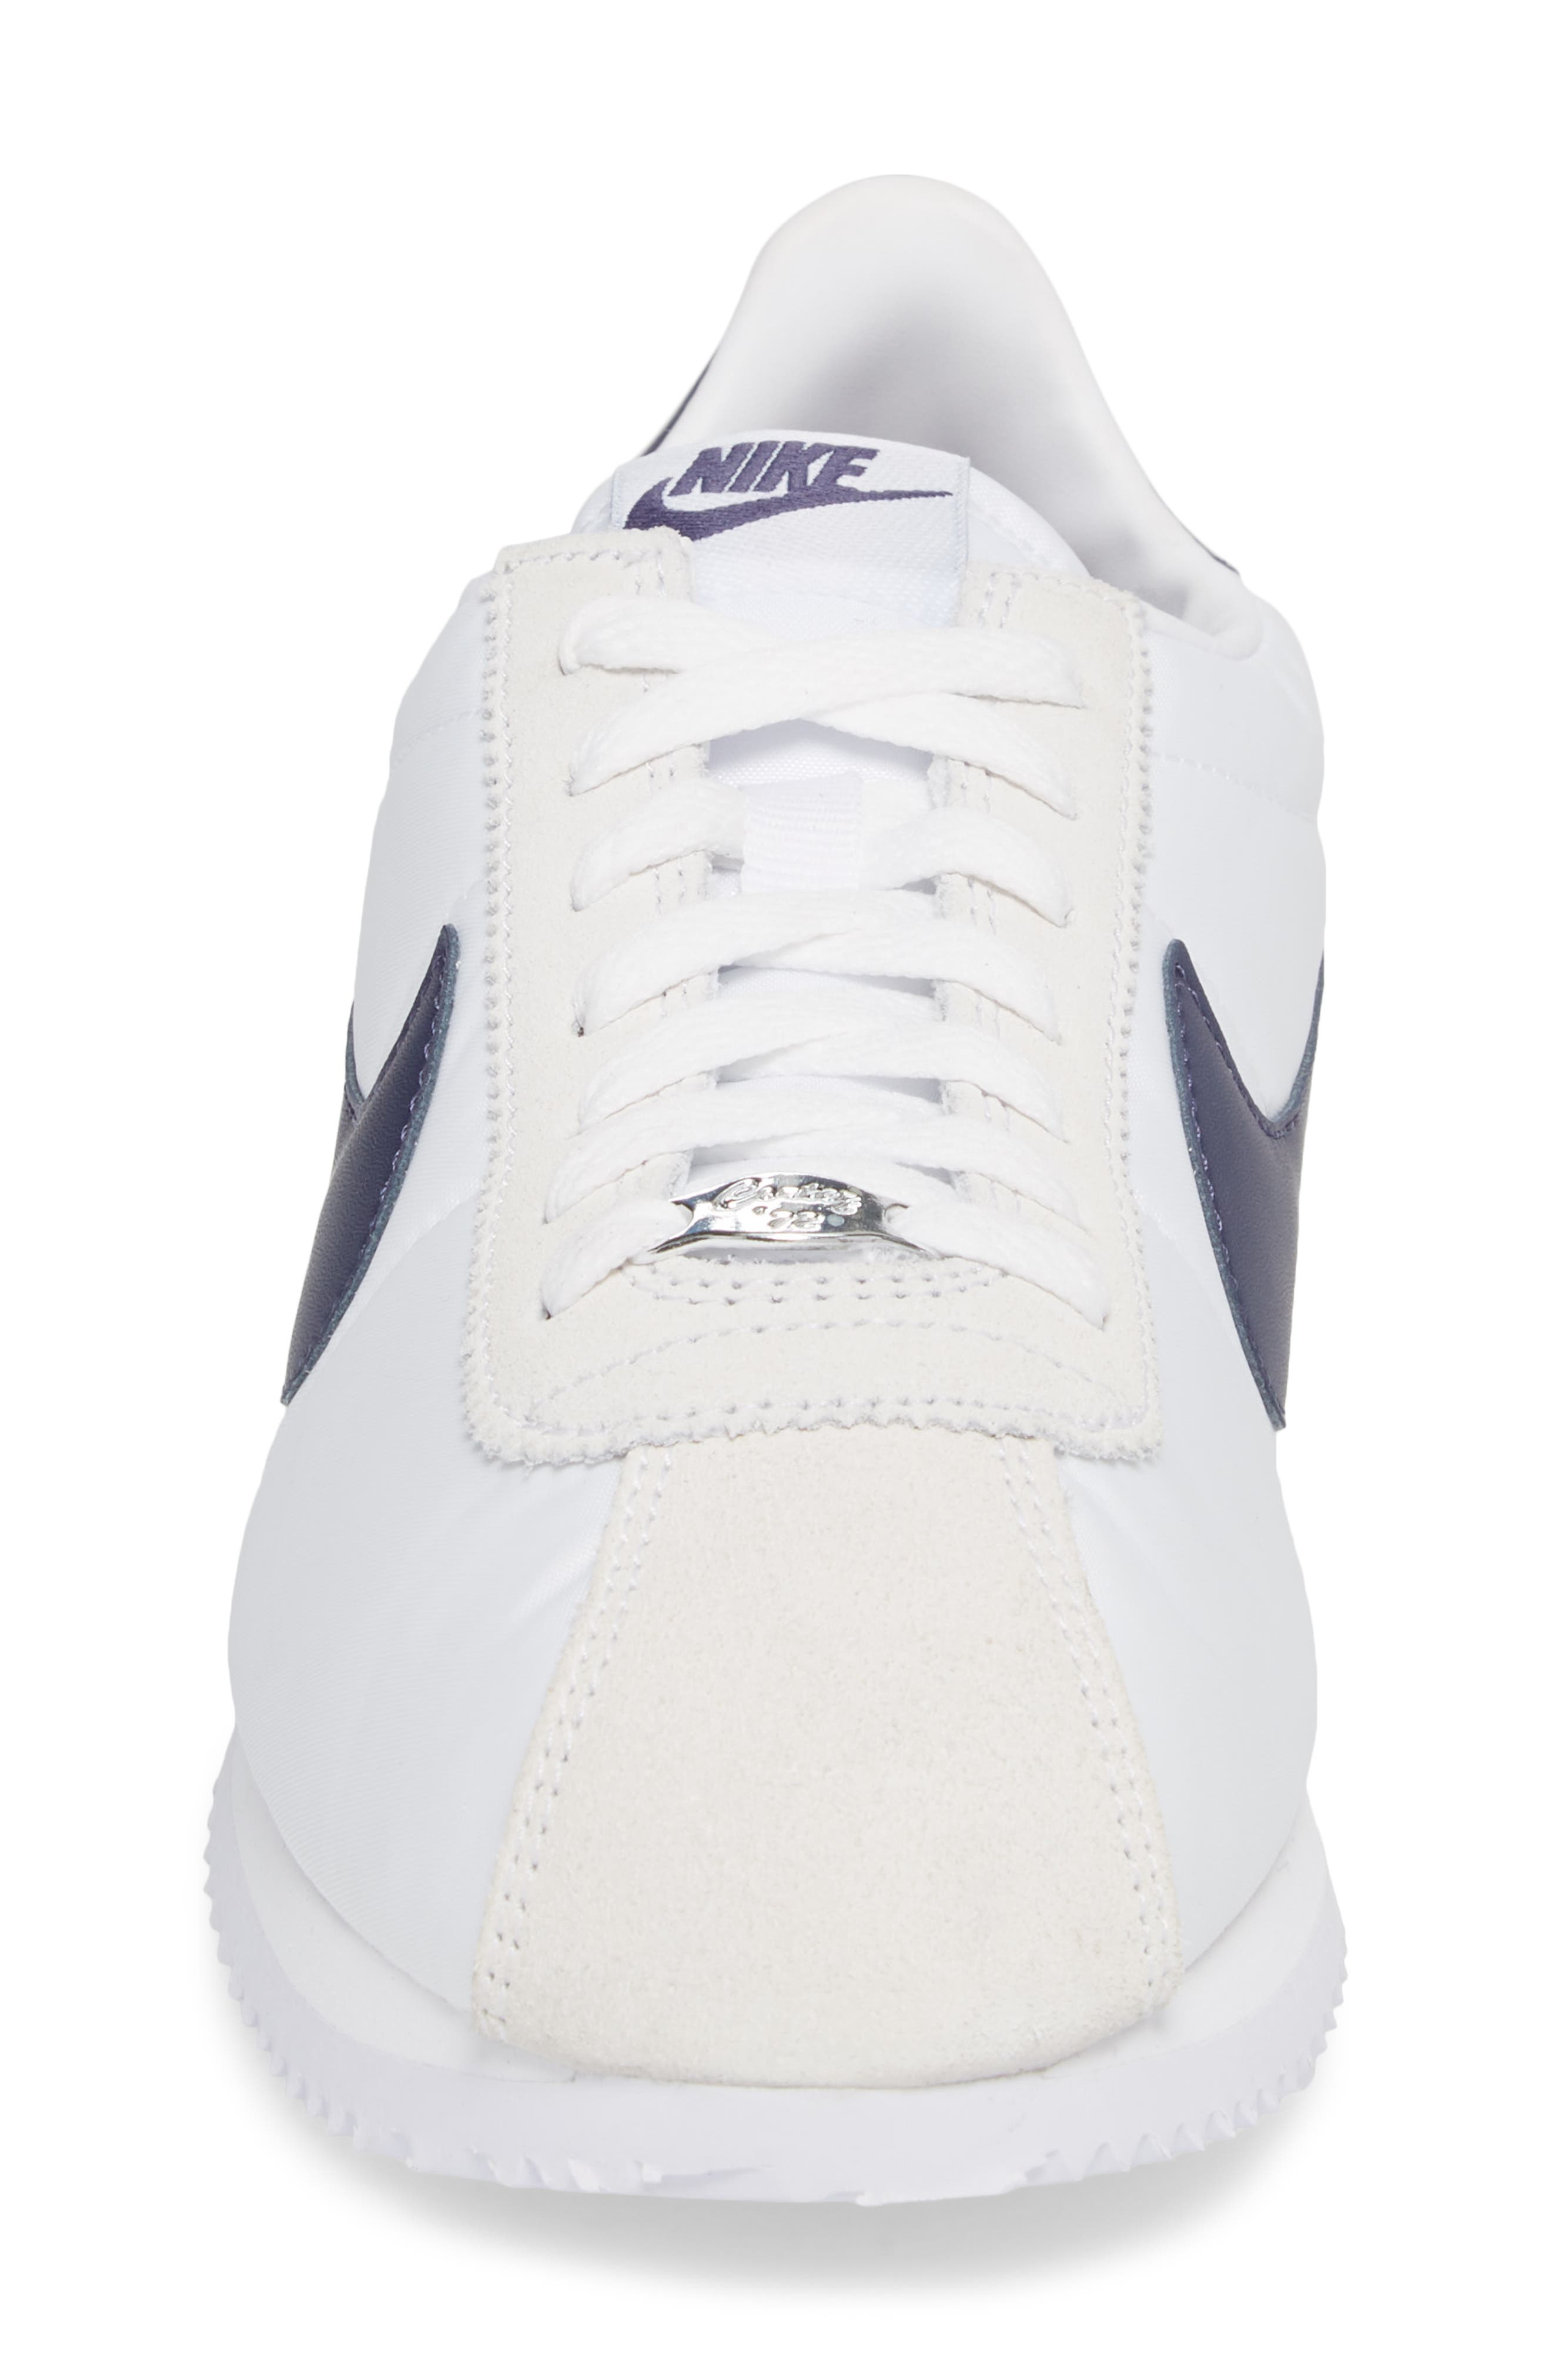 Cortez Basic Nylon Sneaker,                             Alternate thumbnail 4, color,                             102